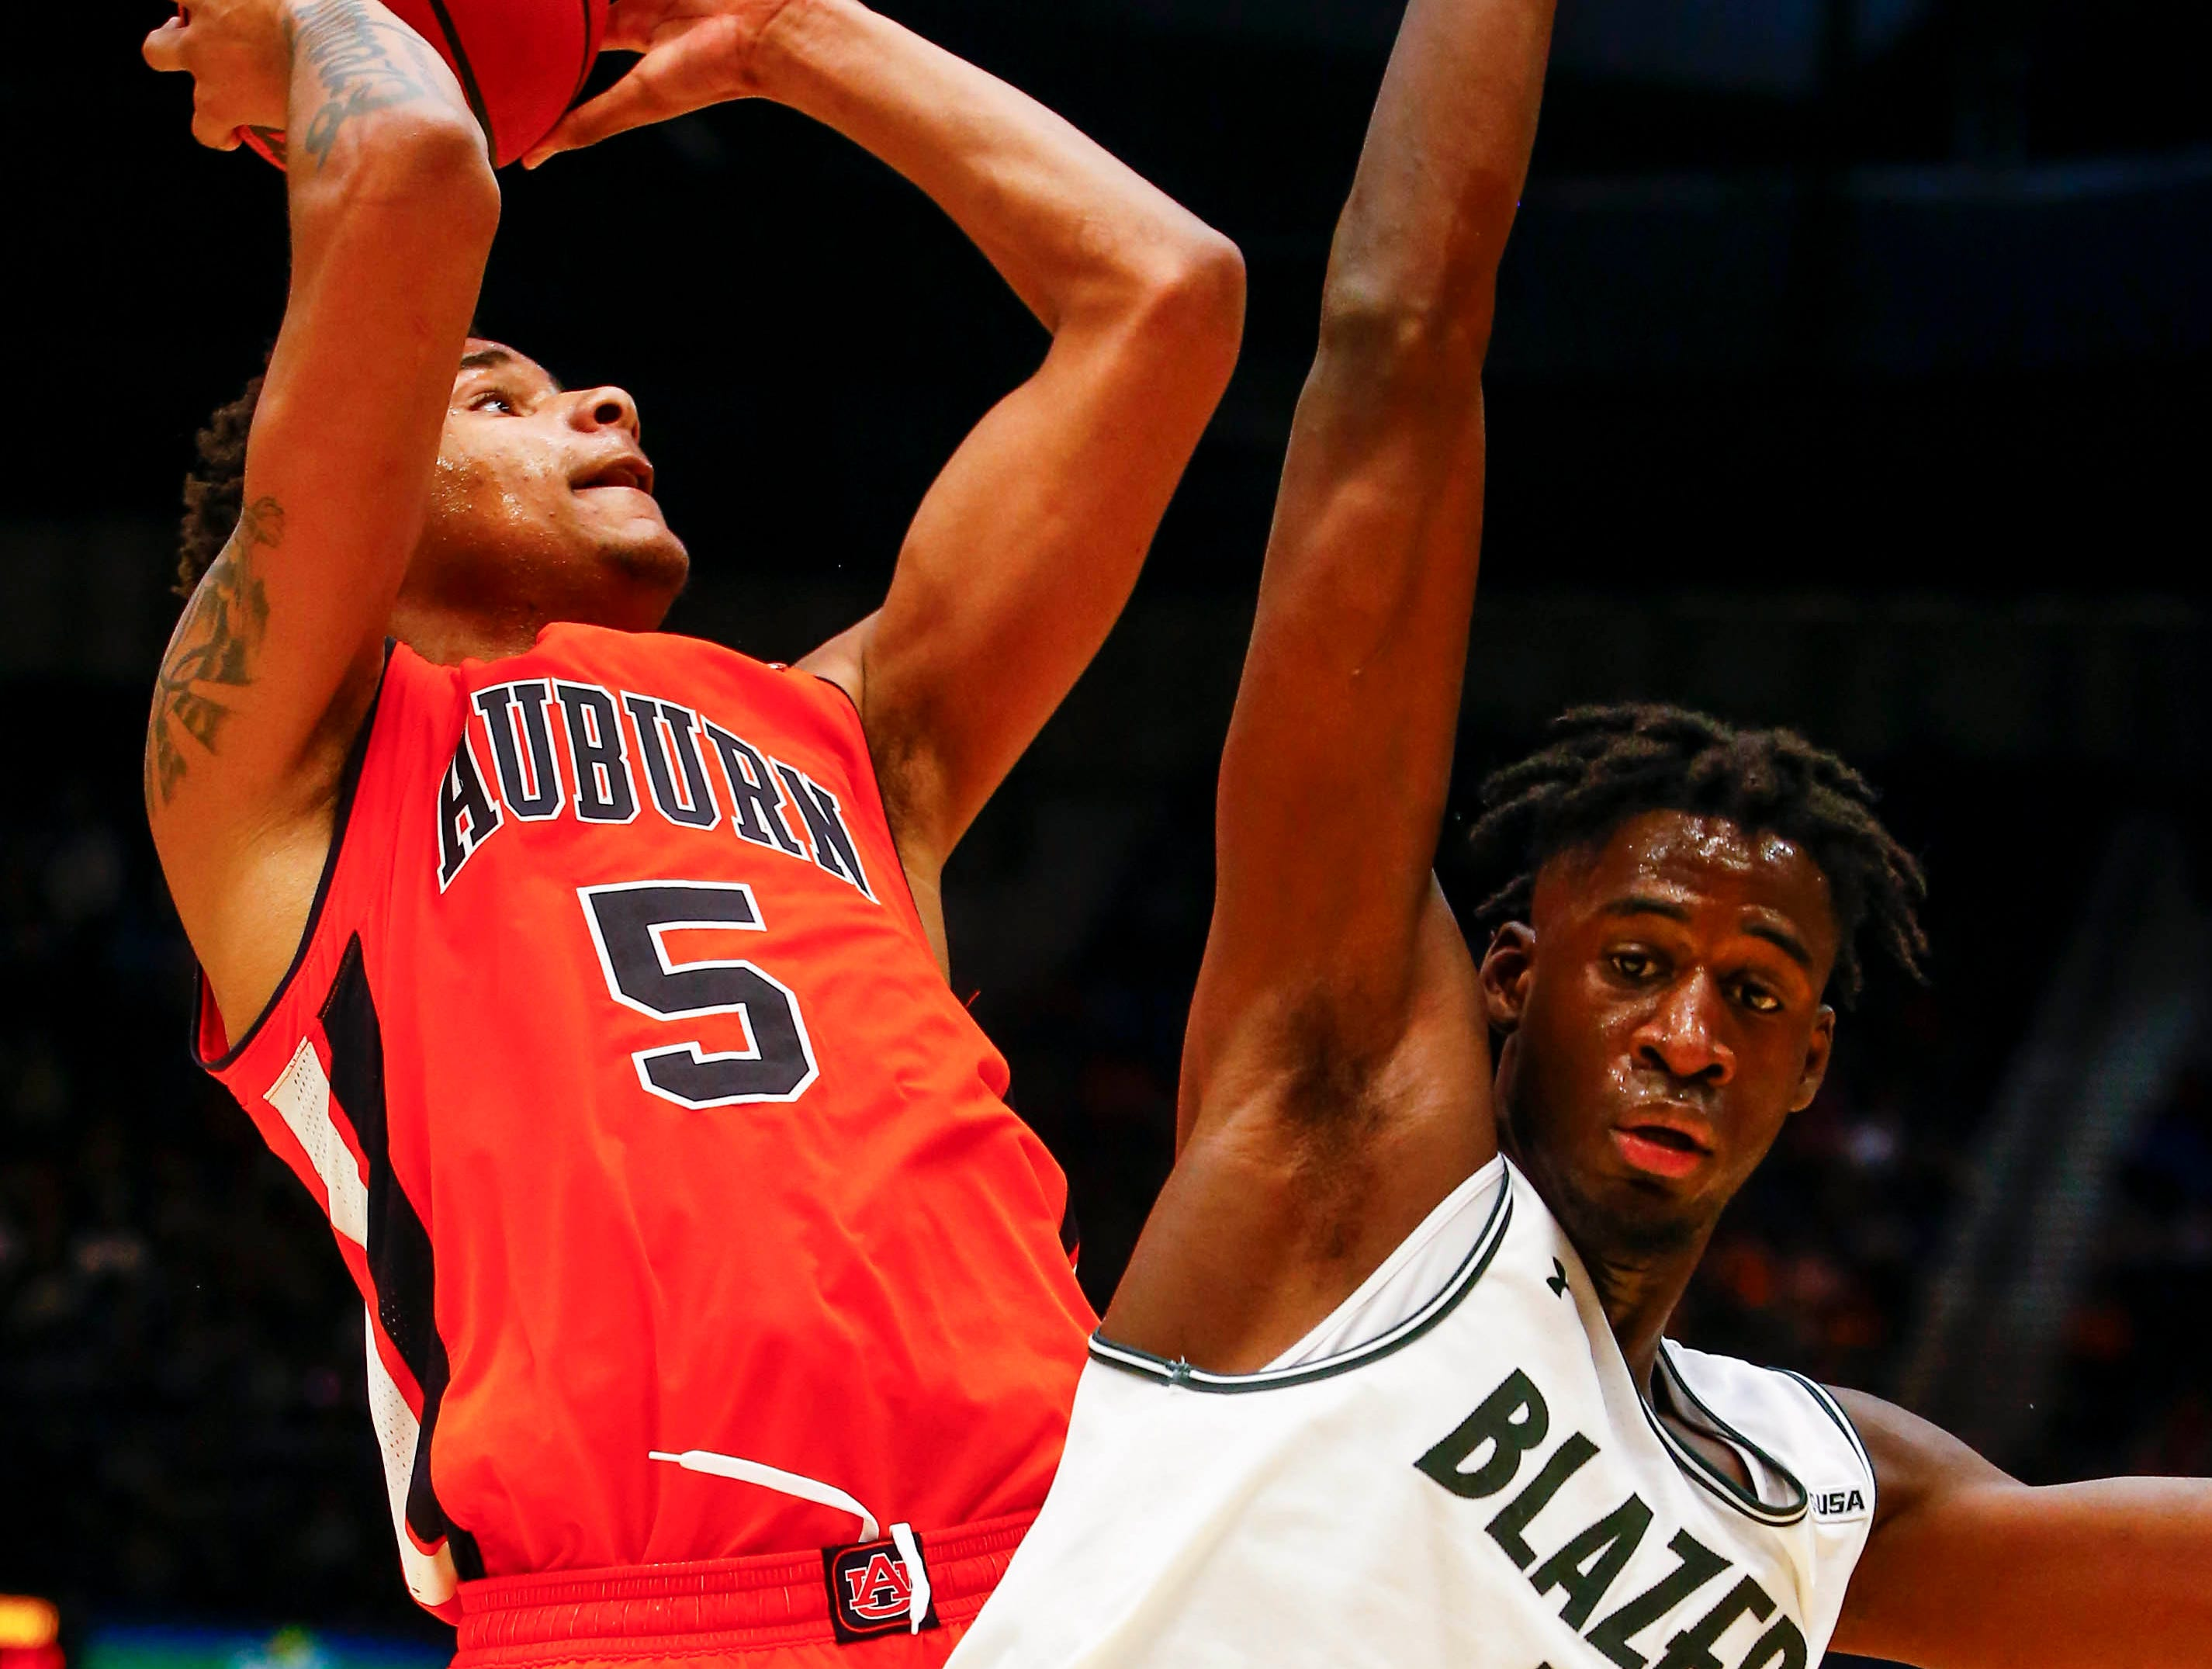 Dec 15, 2018; Birmingham, AL, USA; Auburn Tigers forward Chuma Okeke (5) is fouled by UAB Blazers forward Makhtar Gueye (5) as he goes up for a shot during the second half of an NCAA basketball game at Legacy Arena. Mandatory Credit: Butch Dill-USA TODAY Sports